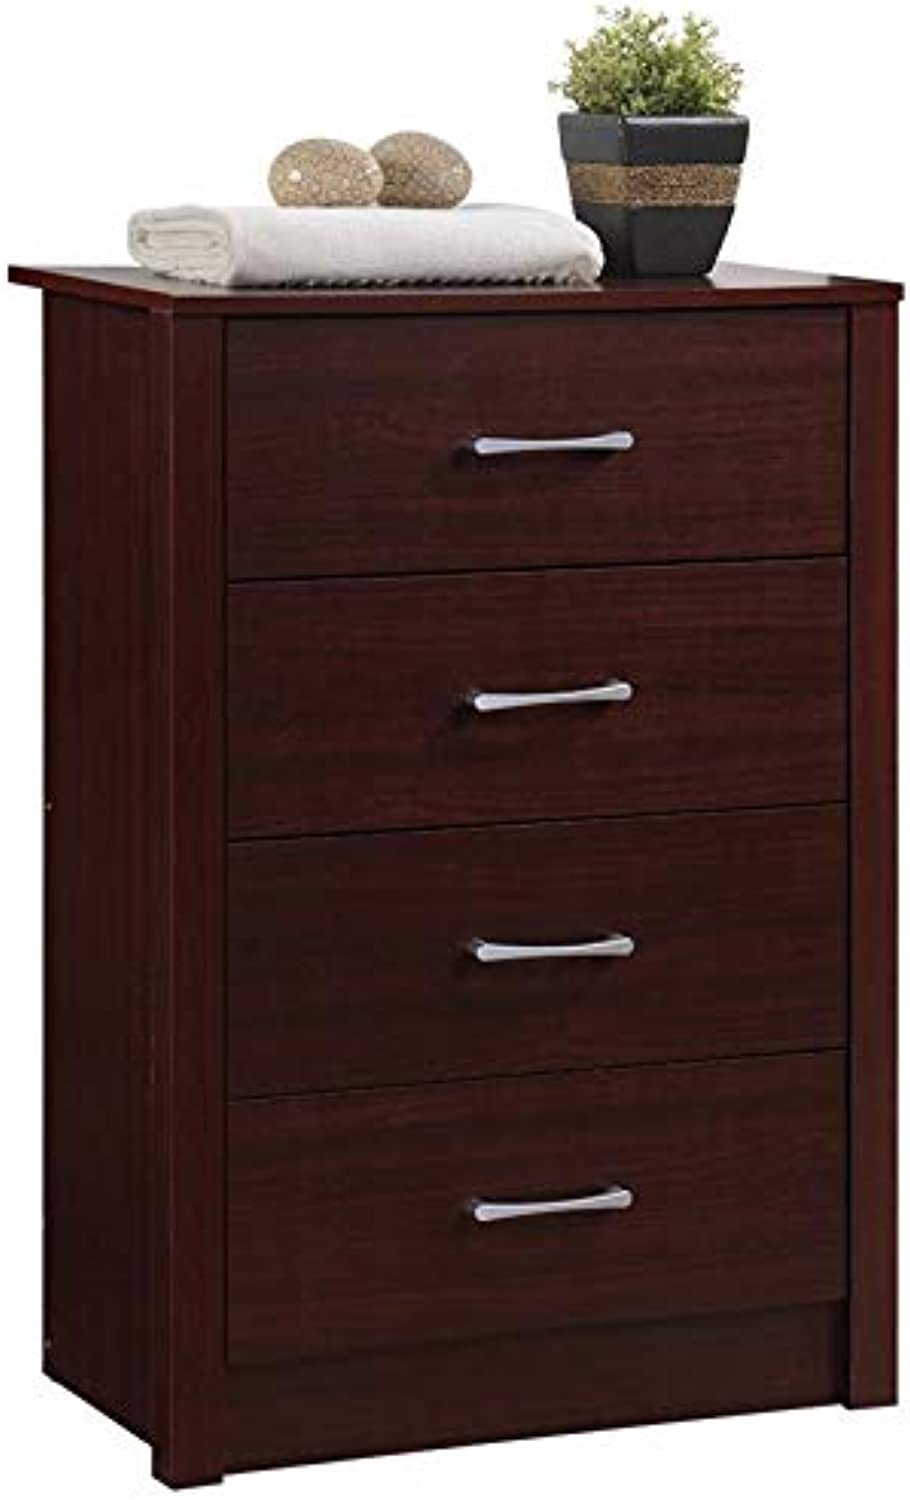 Pemberly Row 4 Drawer Chest in Mahogany